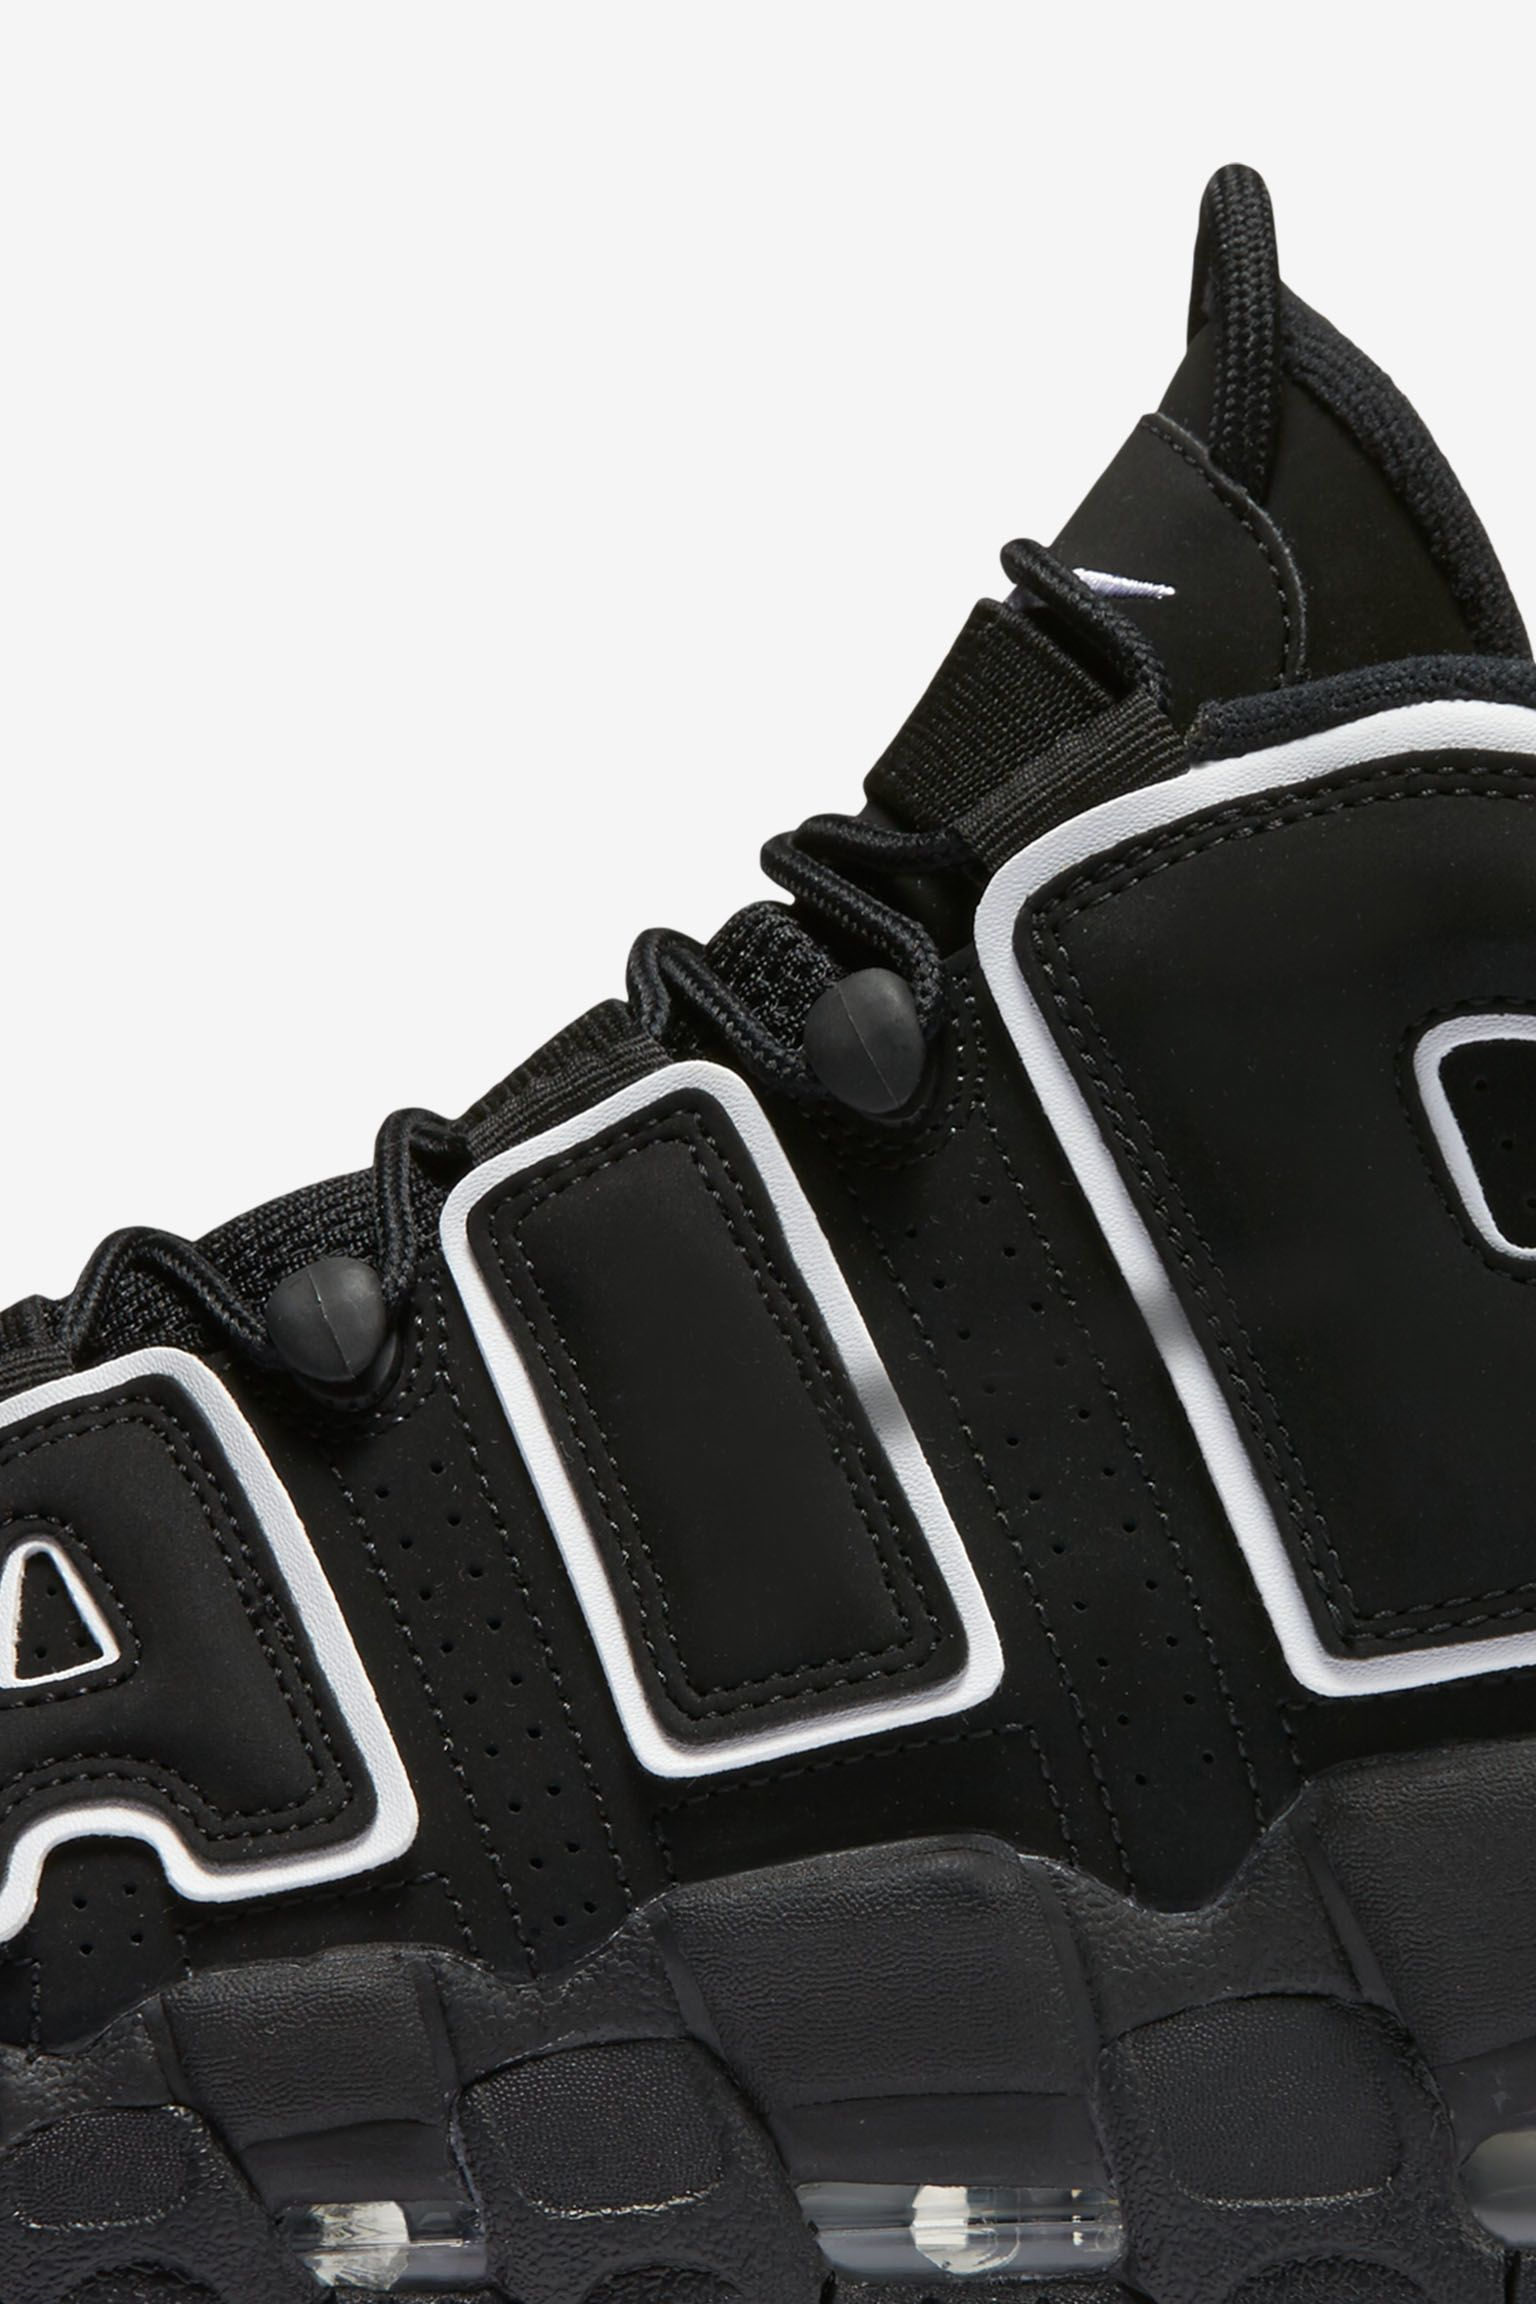 Nike Air More Uptempo 'Black & White' Release Date